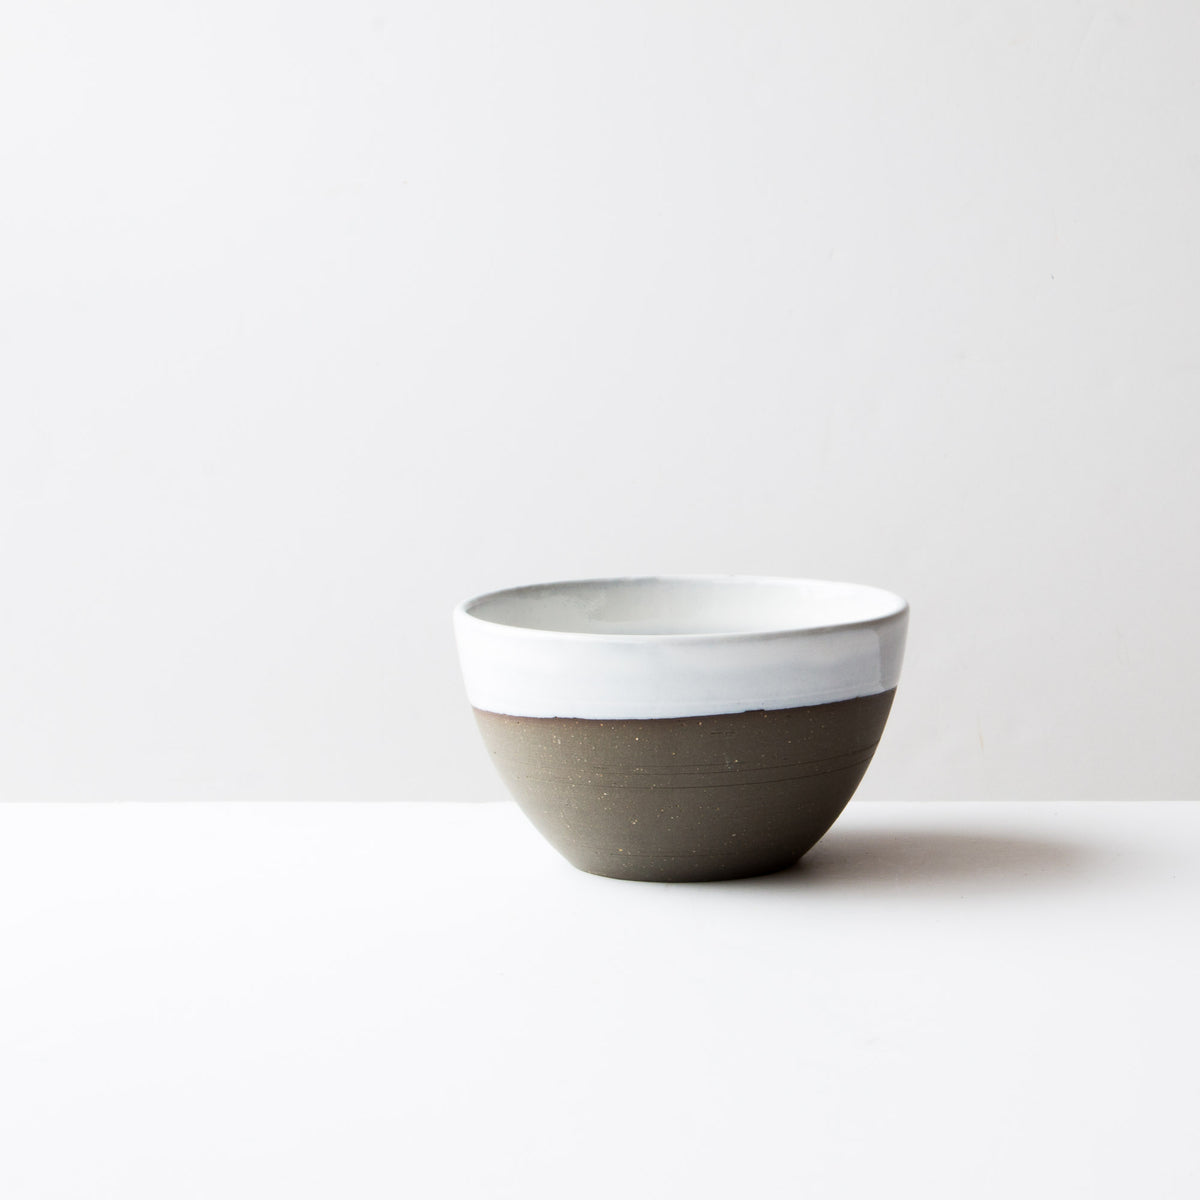 Grey Clay - Creamy White Glaze - Large Ceramic Soup Bowl - Handmade in Québec - Sold by Chic & Basta